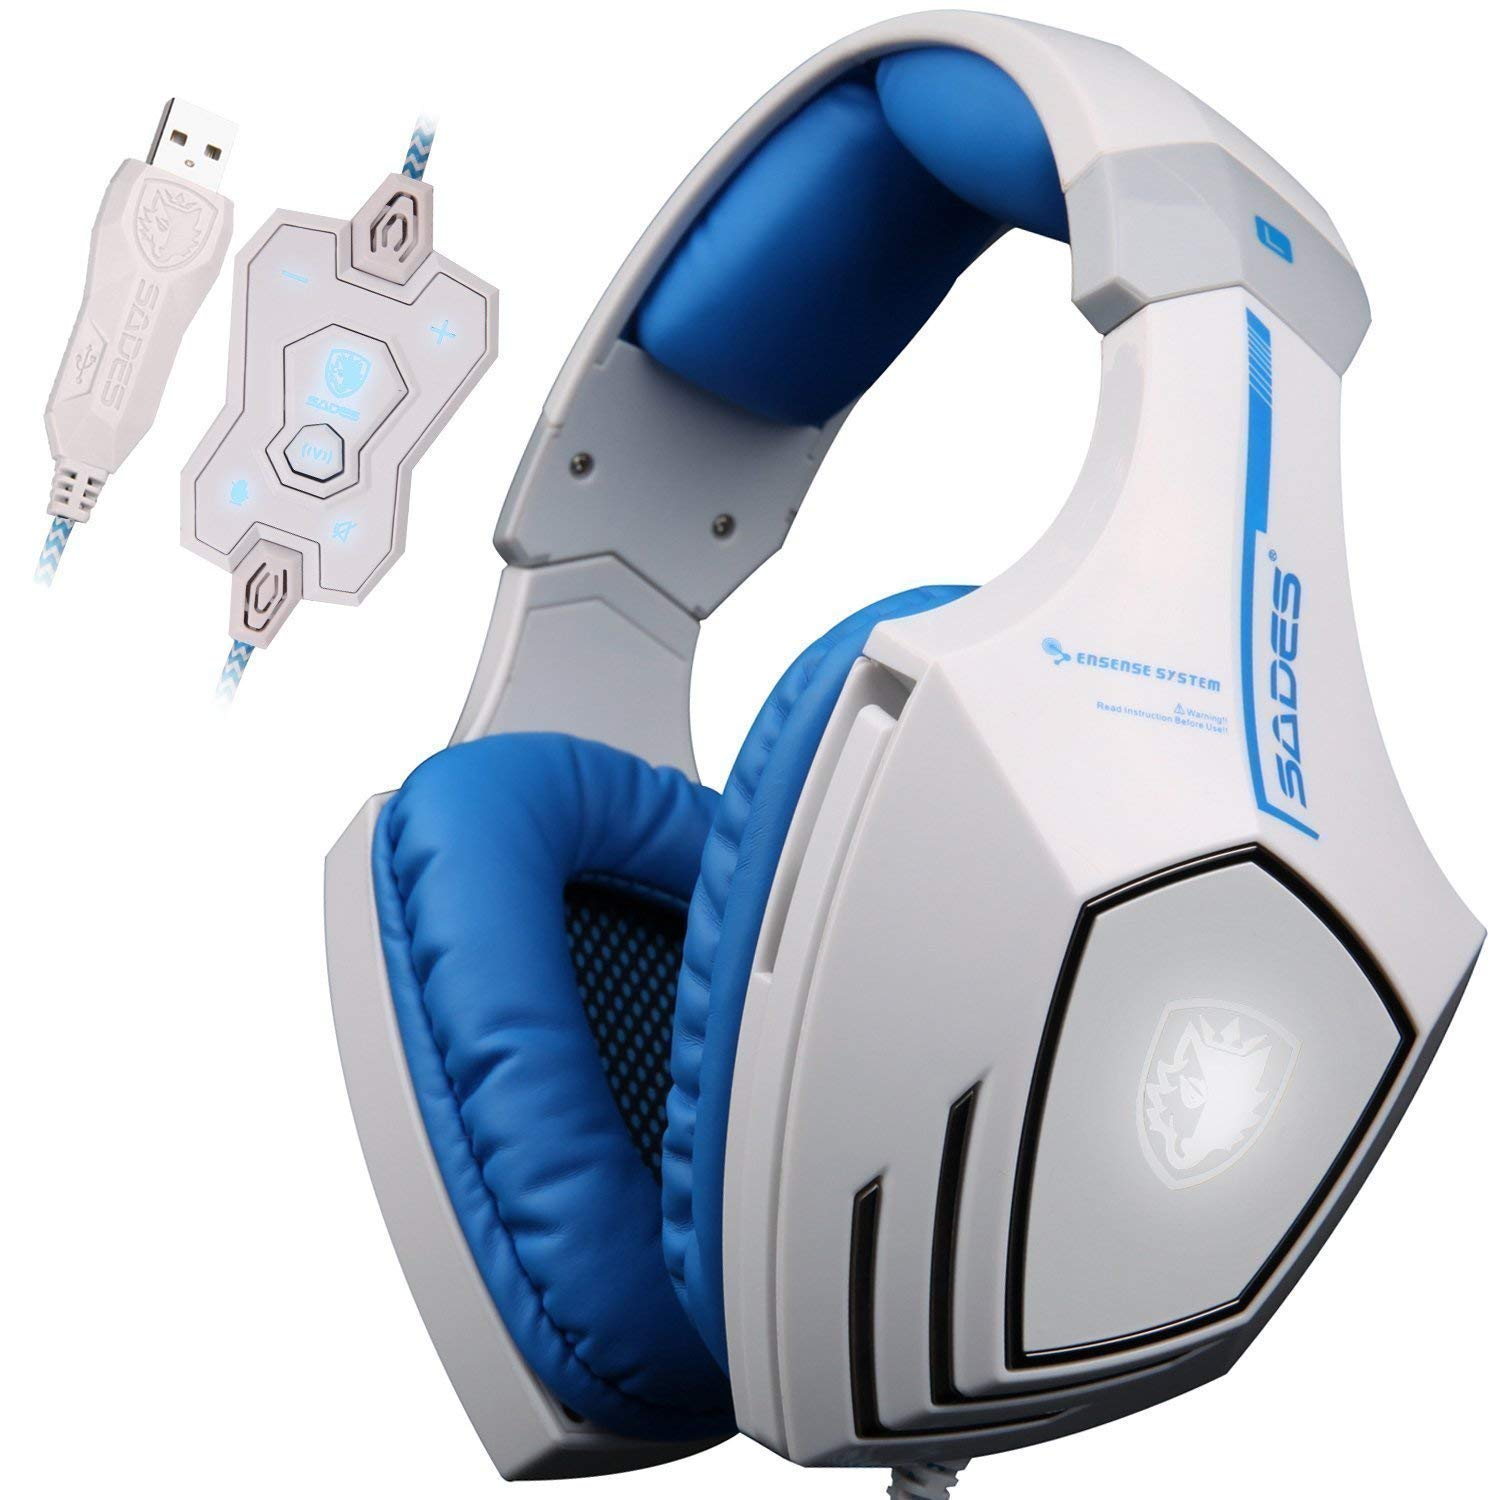 PC Gaming Headphone Headset A60 7.1 USB Surround Sound Stereo Over-Ear with Mic Bass,Vibration,Noise-Canceling,Volume Control